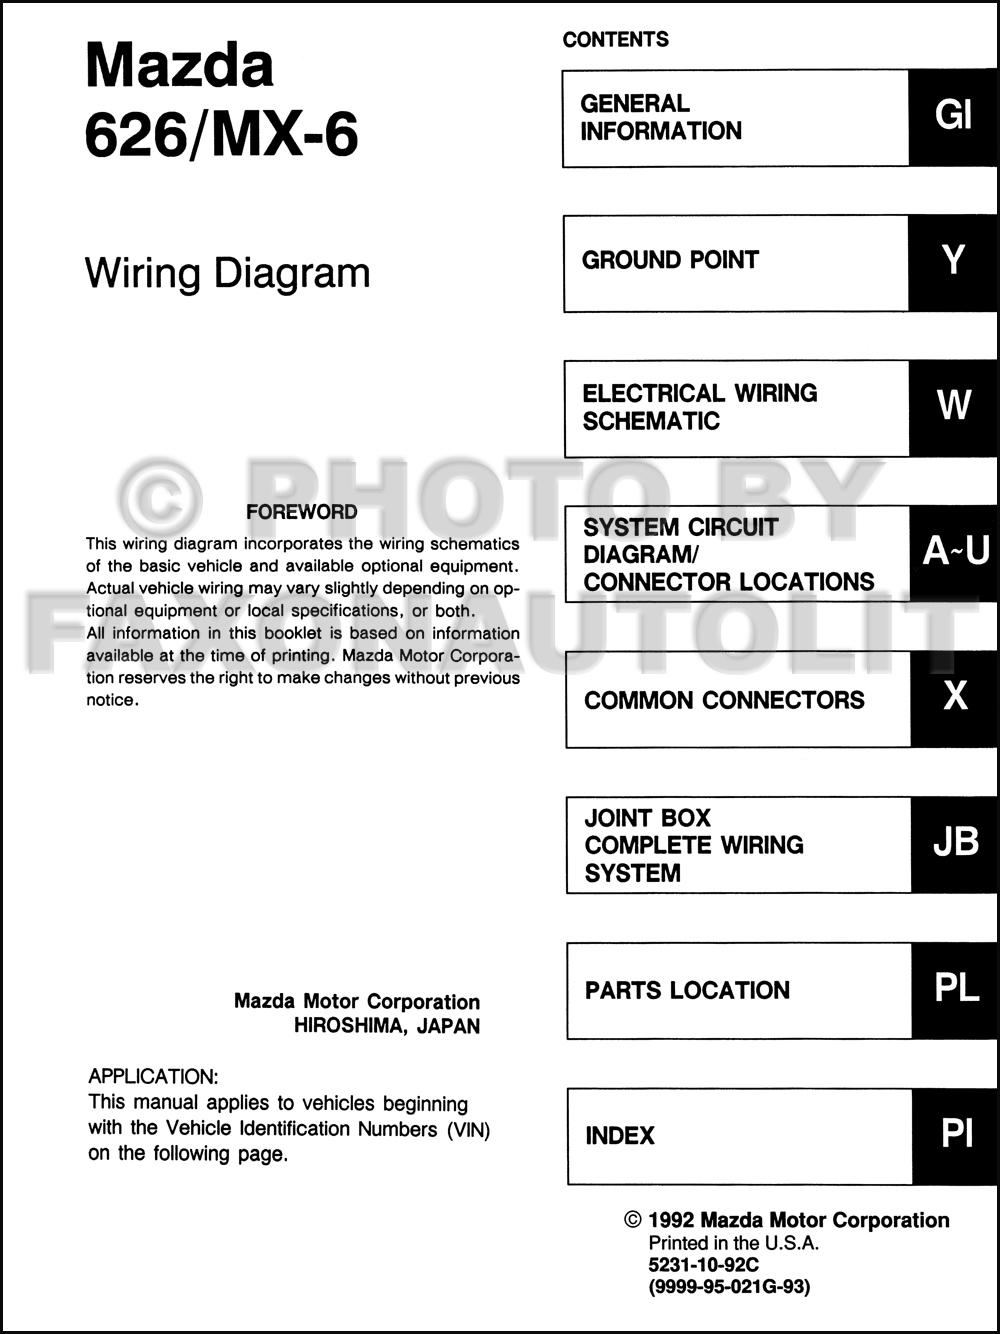 1993 Mazda 626 And Mx 6 Wiring Diagram Manual Original Dodge Omni Wiring  Diagram Mazda 626 Wiring Diagram